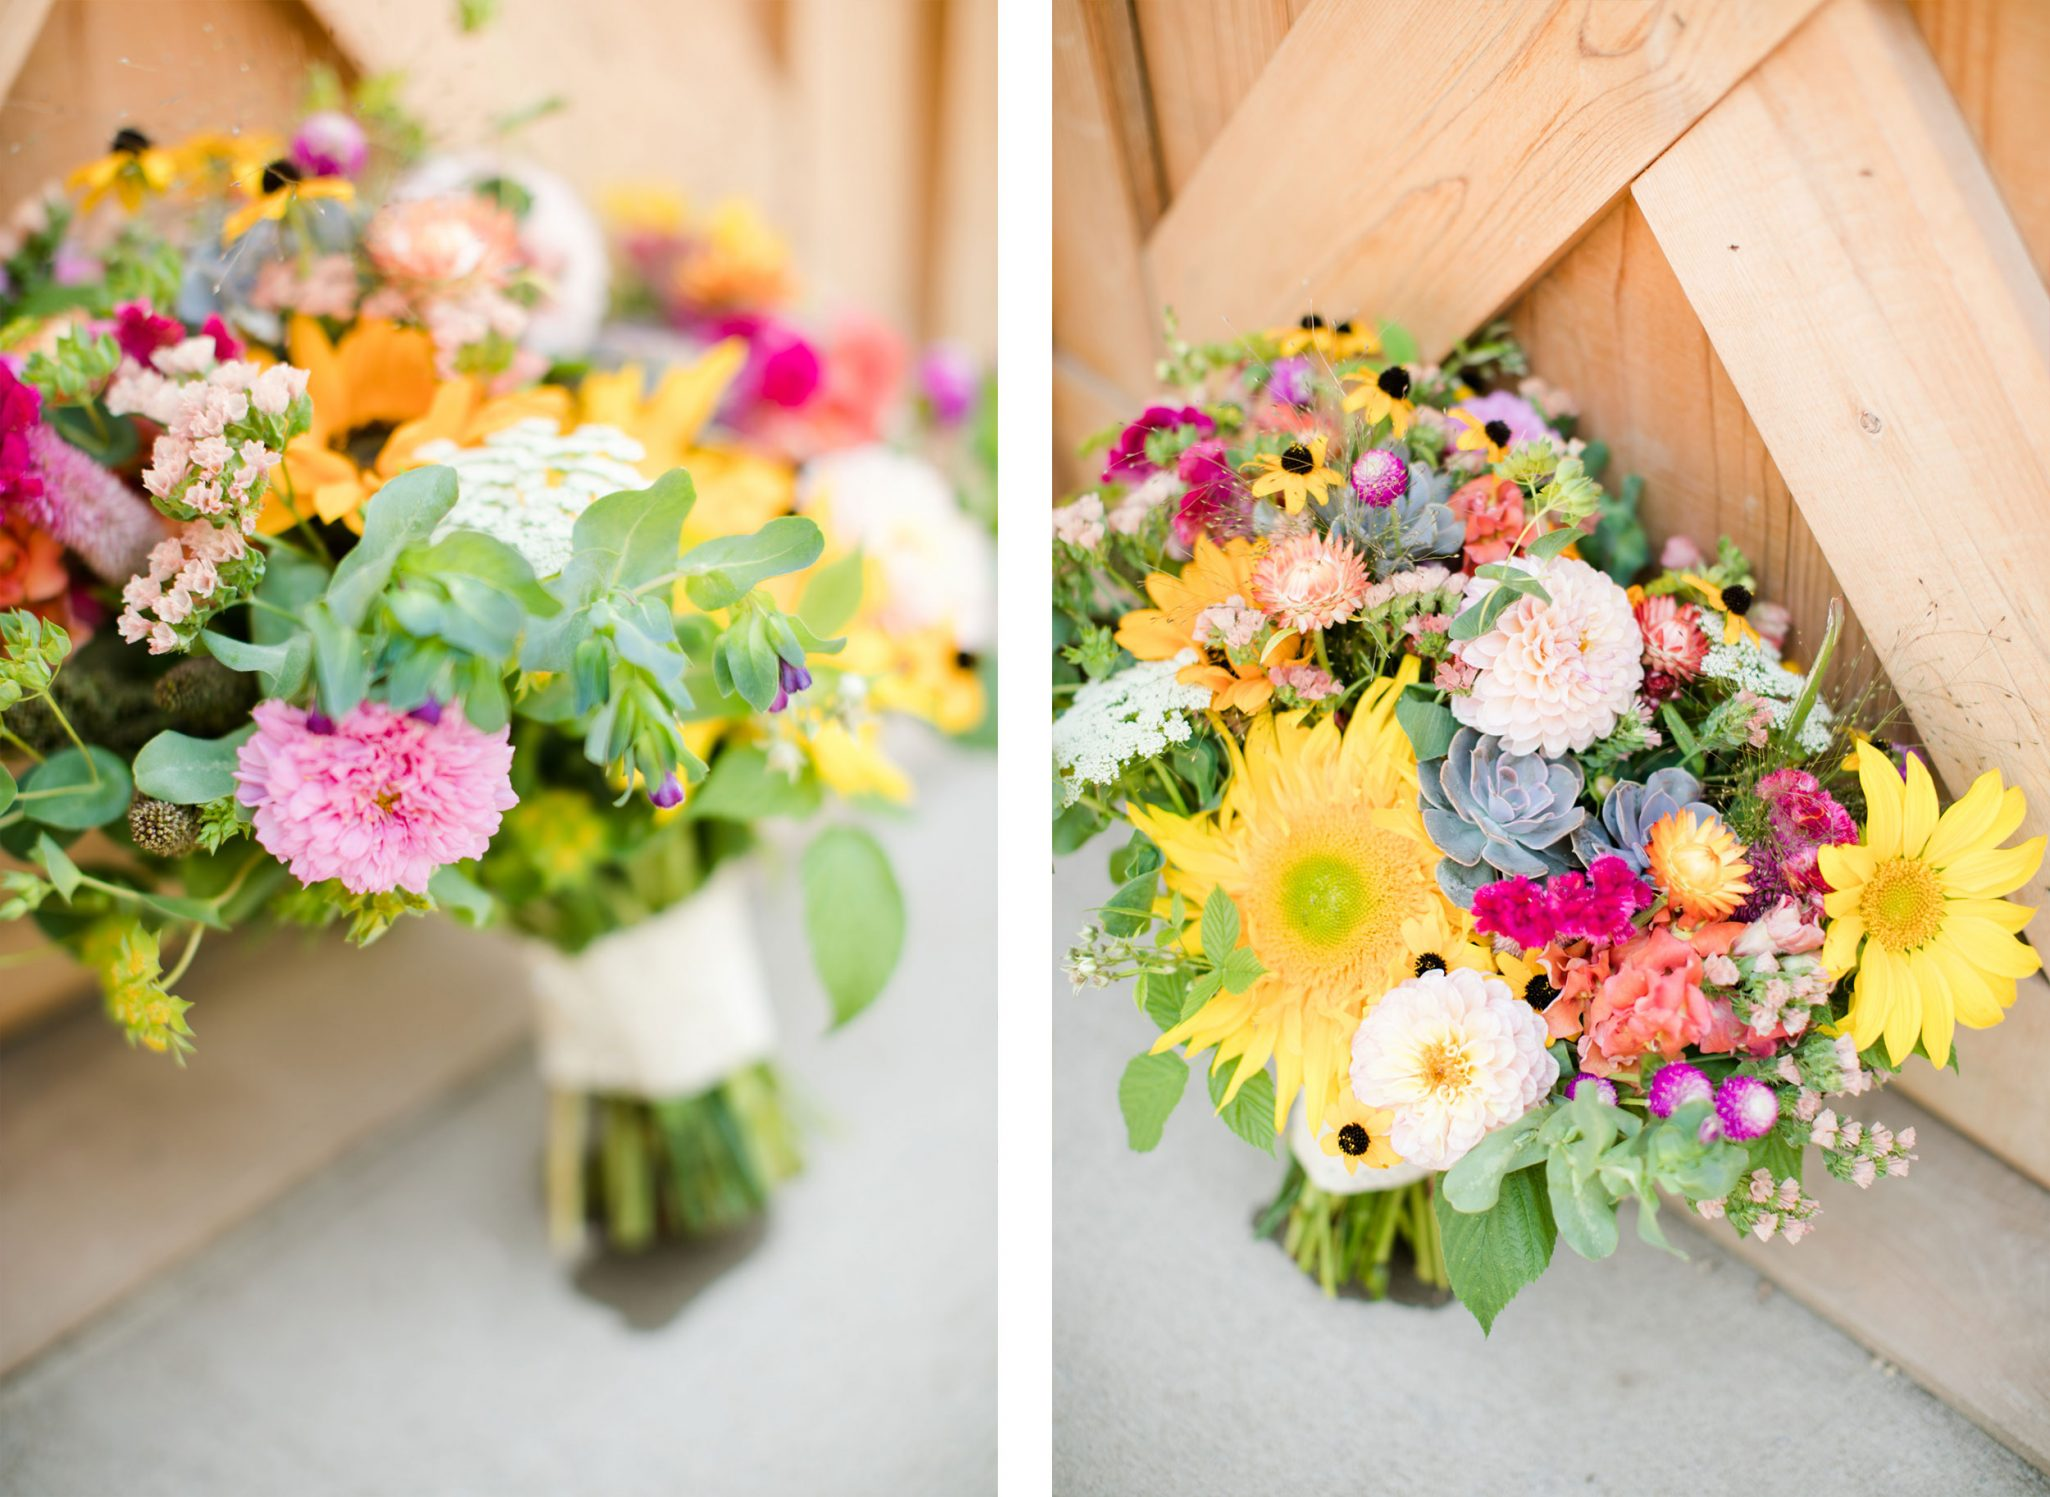 Flower Bouquet | A Boho Garden Wedding in Colorado